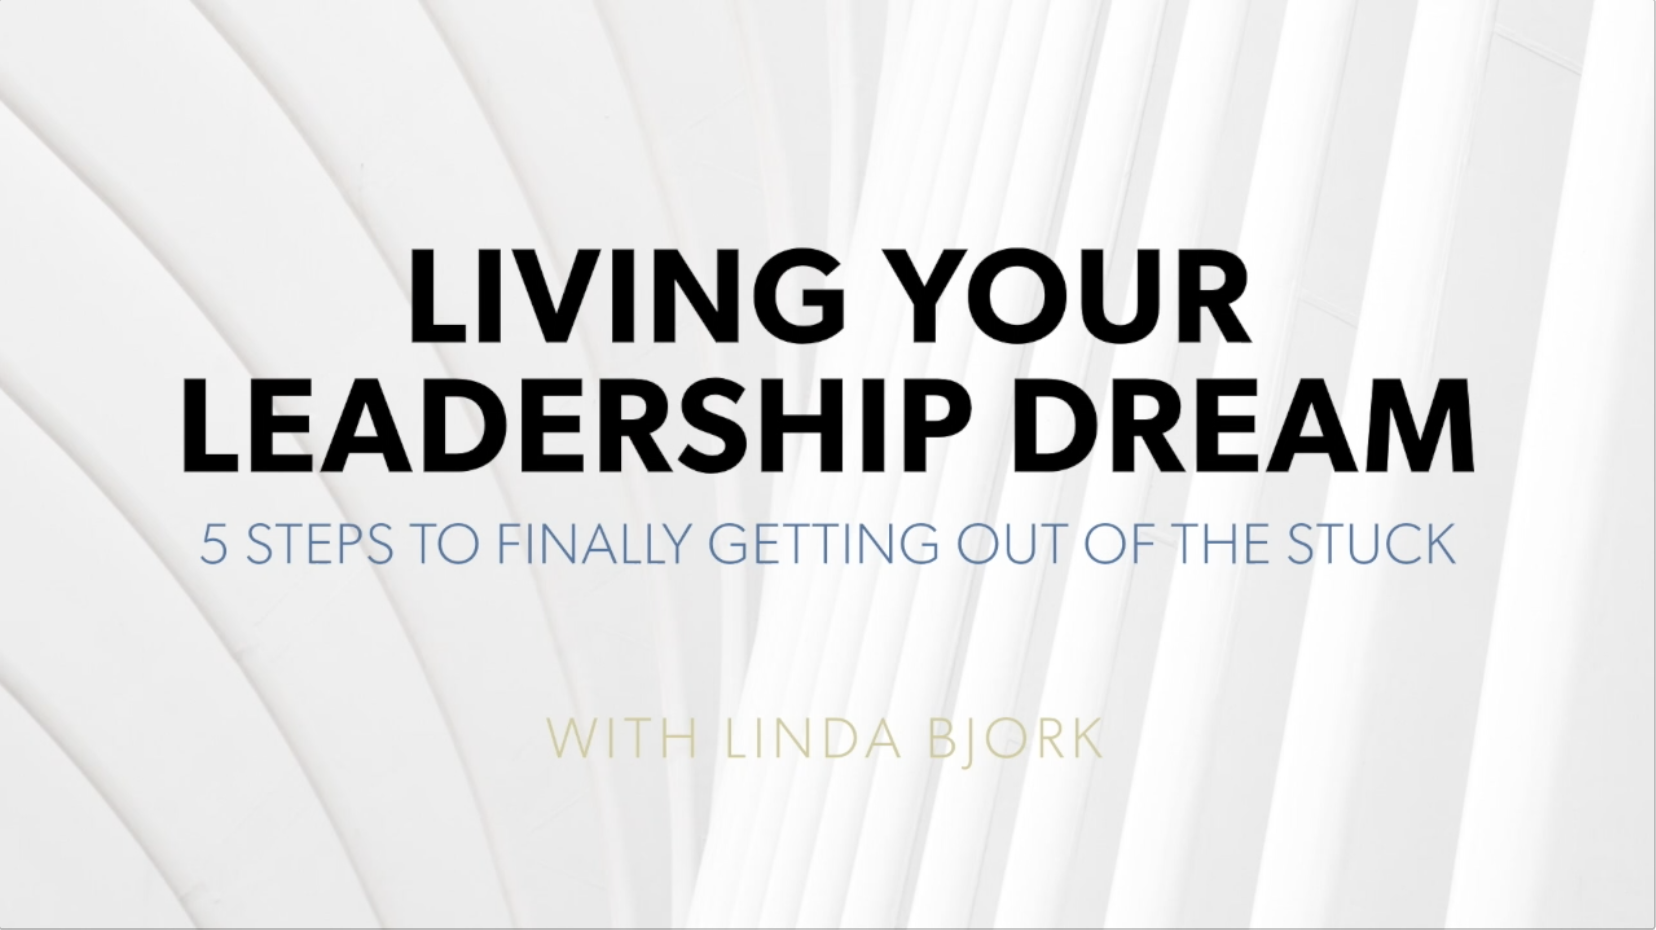 Click on the image to register for this leadership training with Linda Bjork - for free!